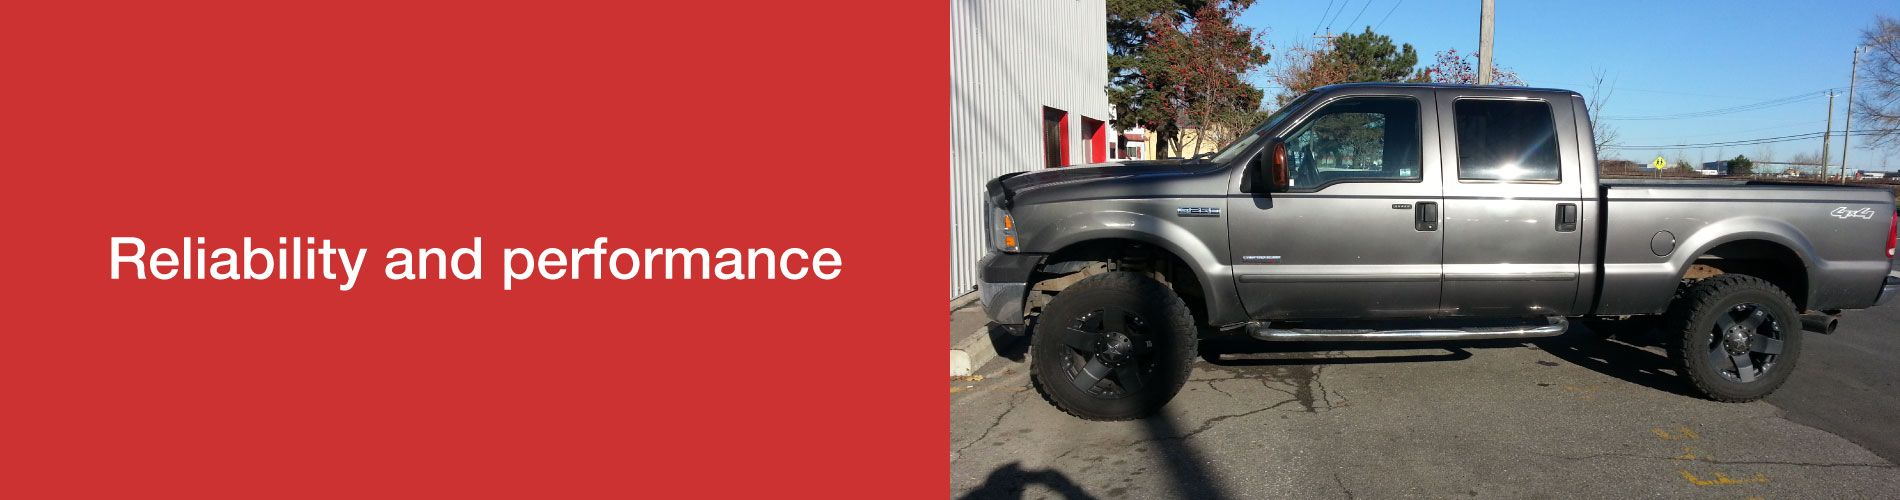 Reliability and performance | 4x4 Truck